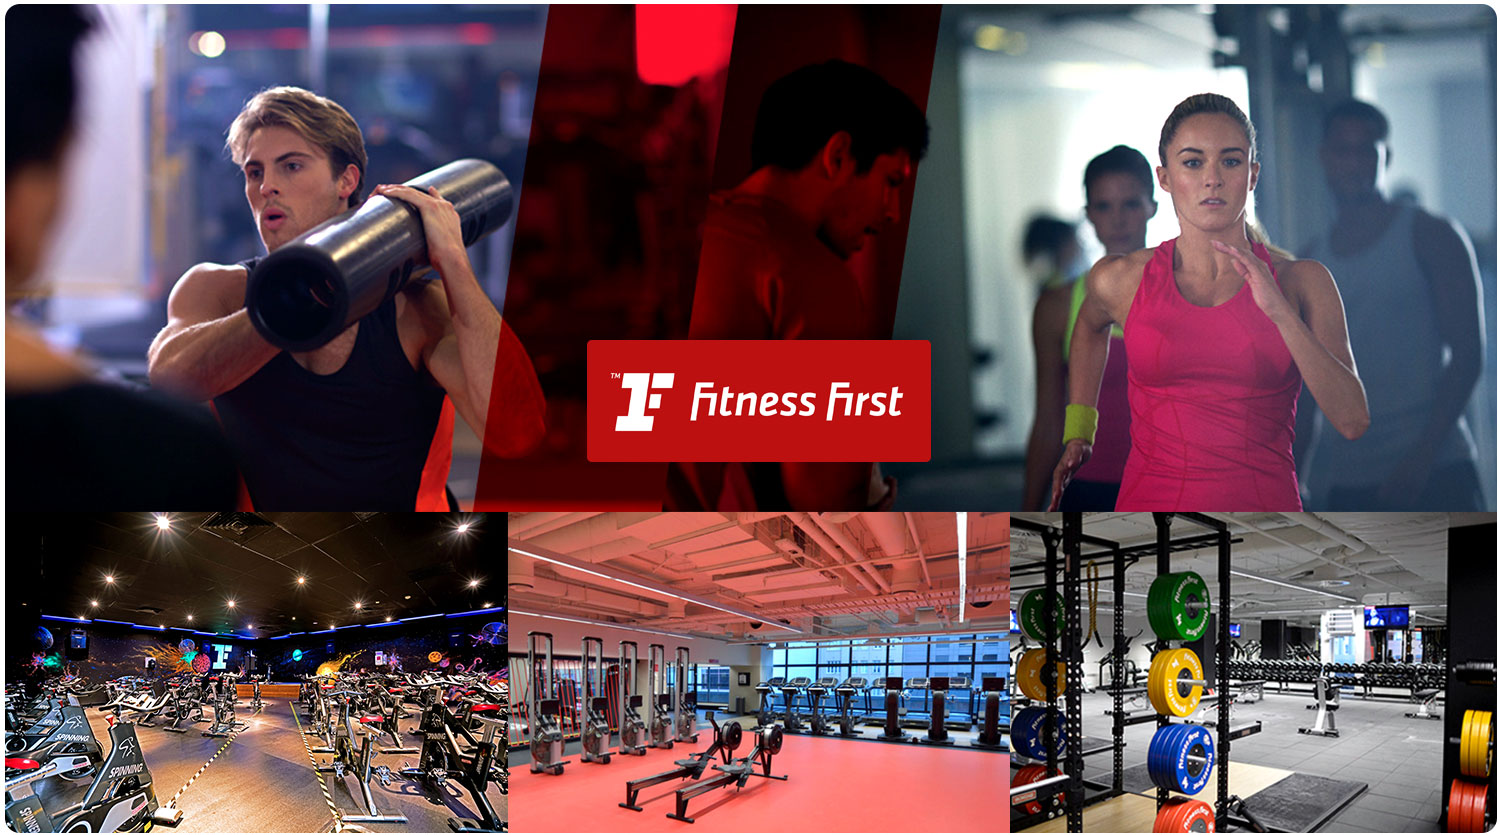 Start your Fitness Journey with Fitness First with only $9.95 for 1 week at Fitness First Platinum Richmond. Experience our first class gym and freestyle classes inc. Yoga, Pilates, Boxing, HIIT Les Mills and more. Take the first step with Fitness First Platinum Richmond.